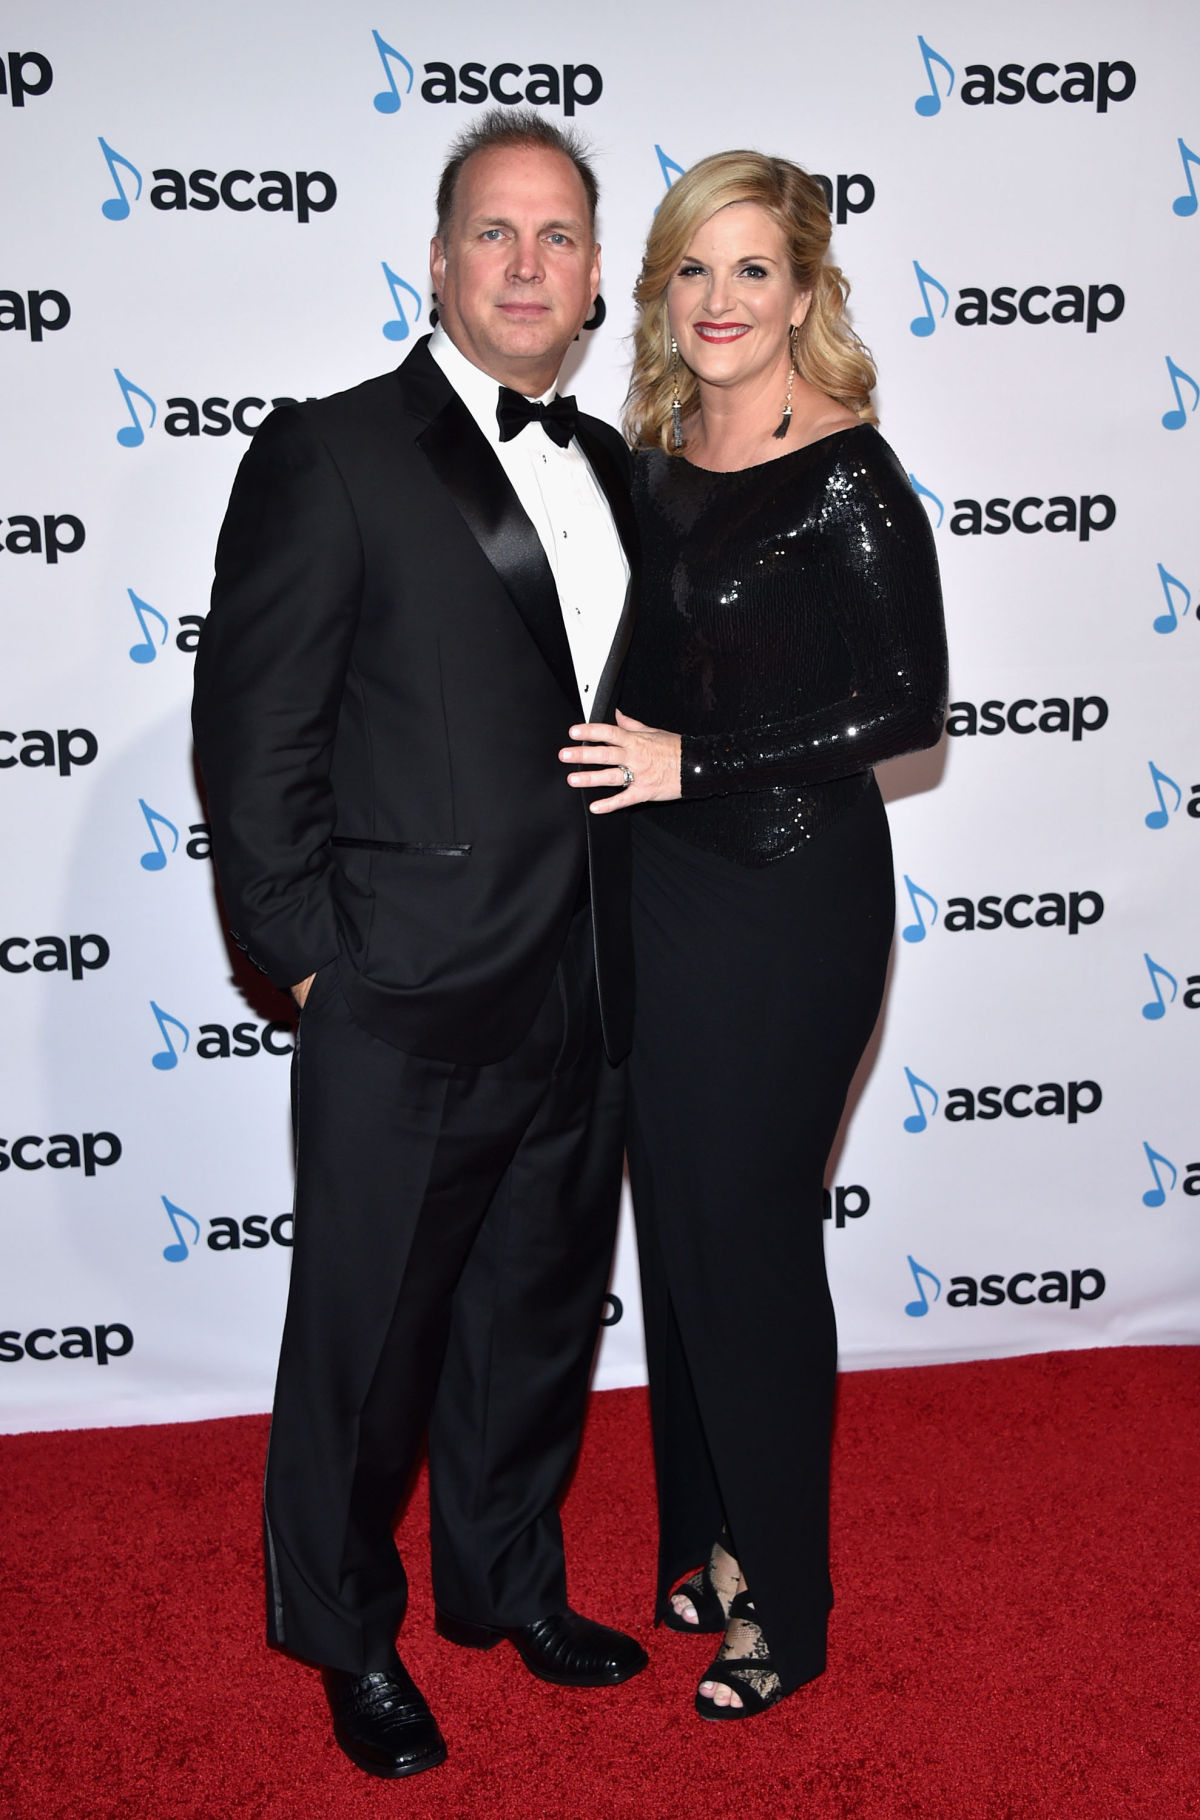 Trisha Yearwood and Garth Brooks